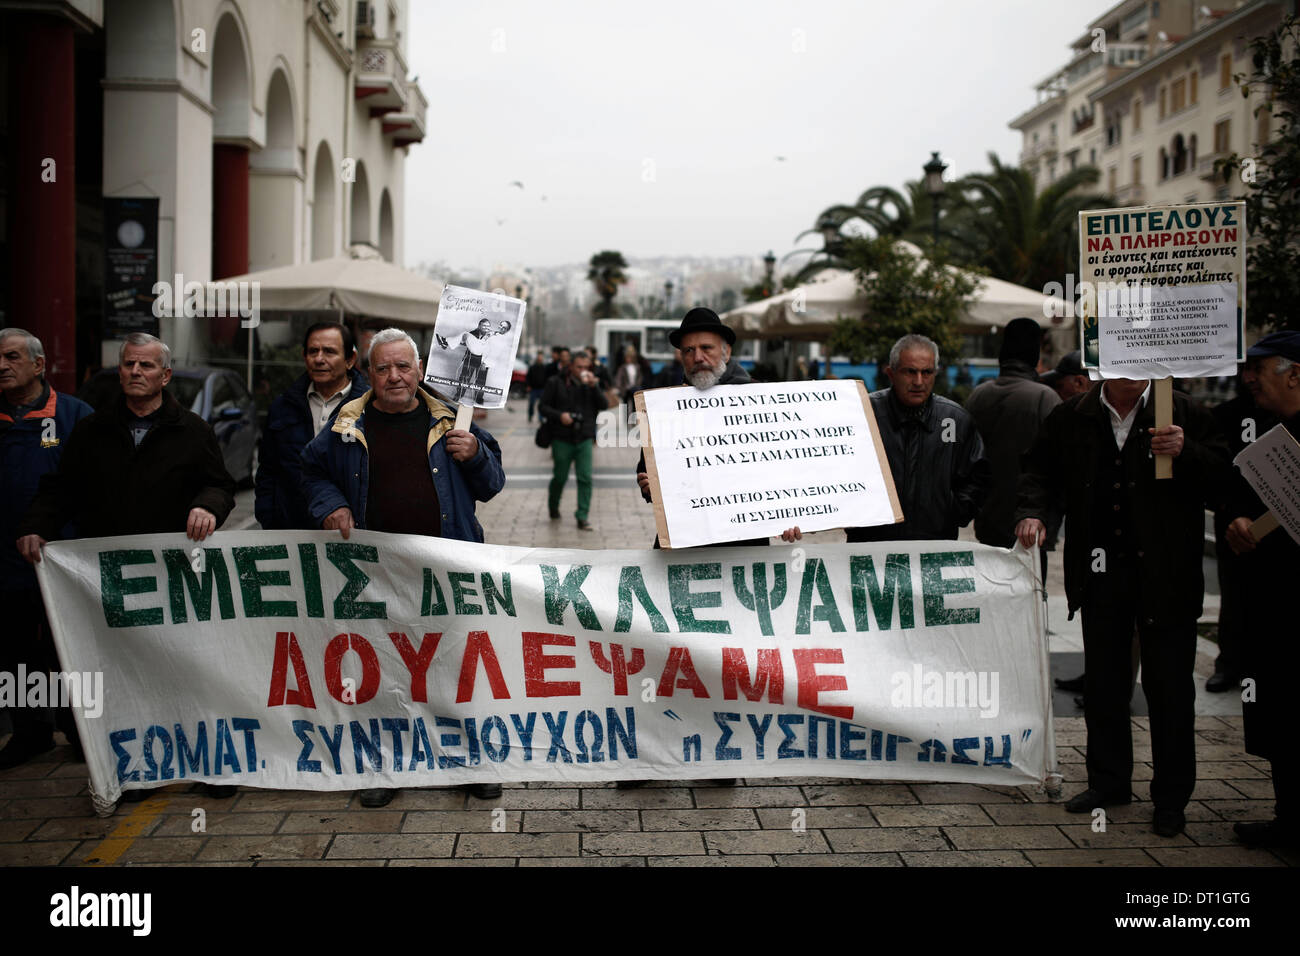 Thessaloniki, Greece. 06th Feb, 2014. Protest by employees in the field of public health and pensioners outside the National Organization of Health Services offices in Thessaloniki. Doctors and workers in public hospitals and EOPYY (National Organization of Health Services)  strike against the bill for the Primary Health Care (PHC), which voted in Parliament today. Thessaloniki, Greece on February 6, 2014. Credit:  Konstantinos Tsakalidis/Alamy Live News - Stock Image